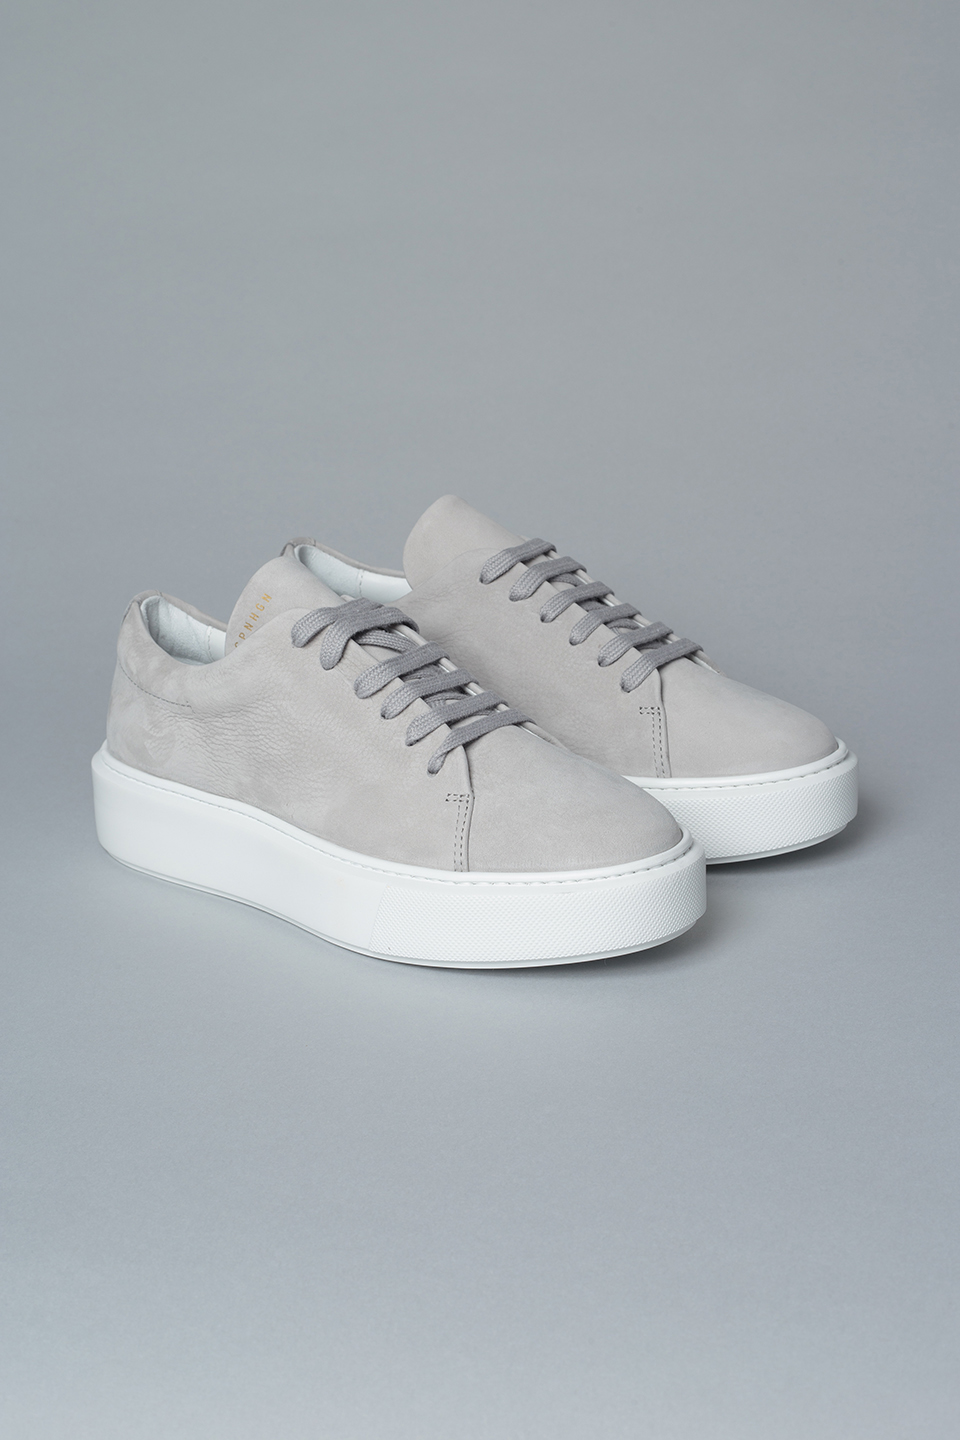 CPH407 nabuc light grey - alternative 4